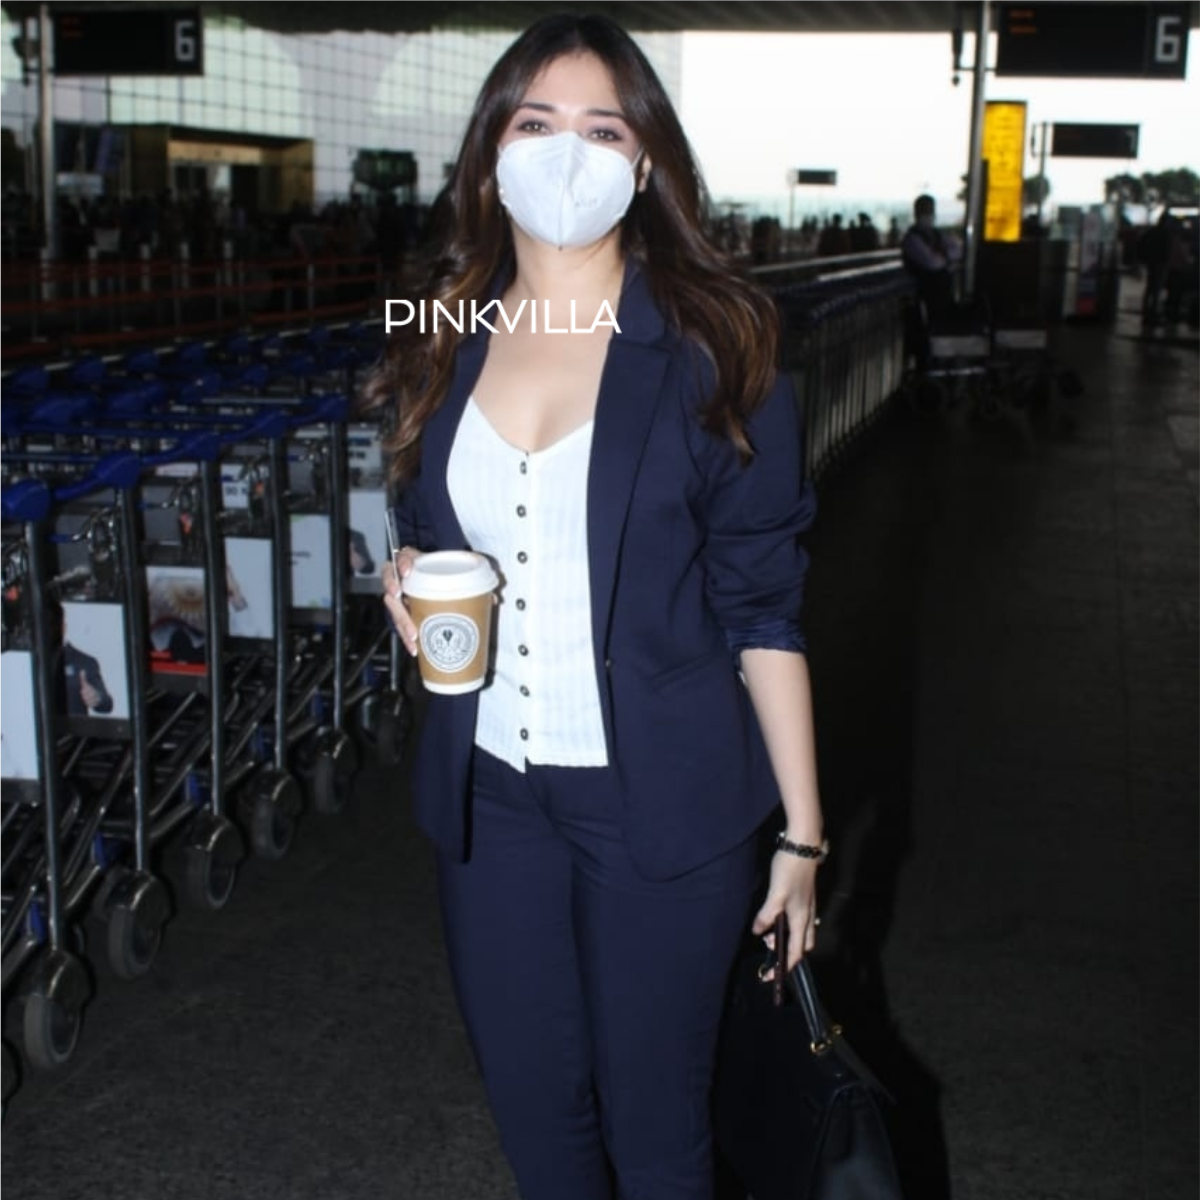 Tamannaah Bhatia keeps her look super formal as she is spotted in the airport; See PHOTOS